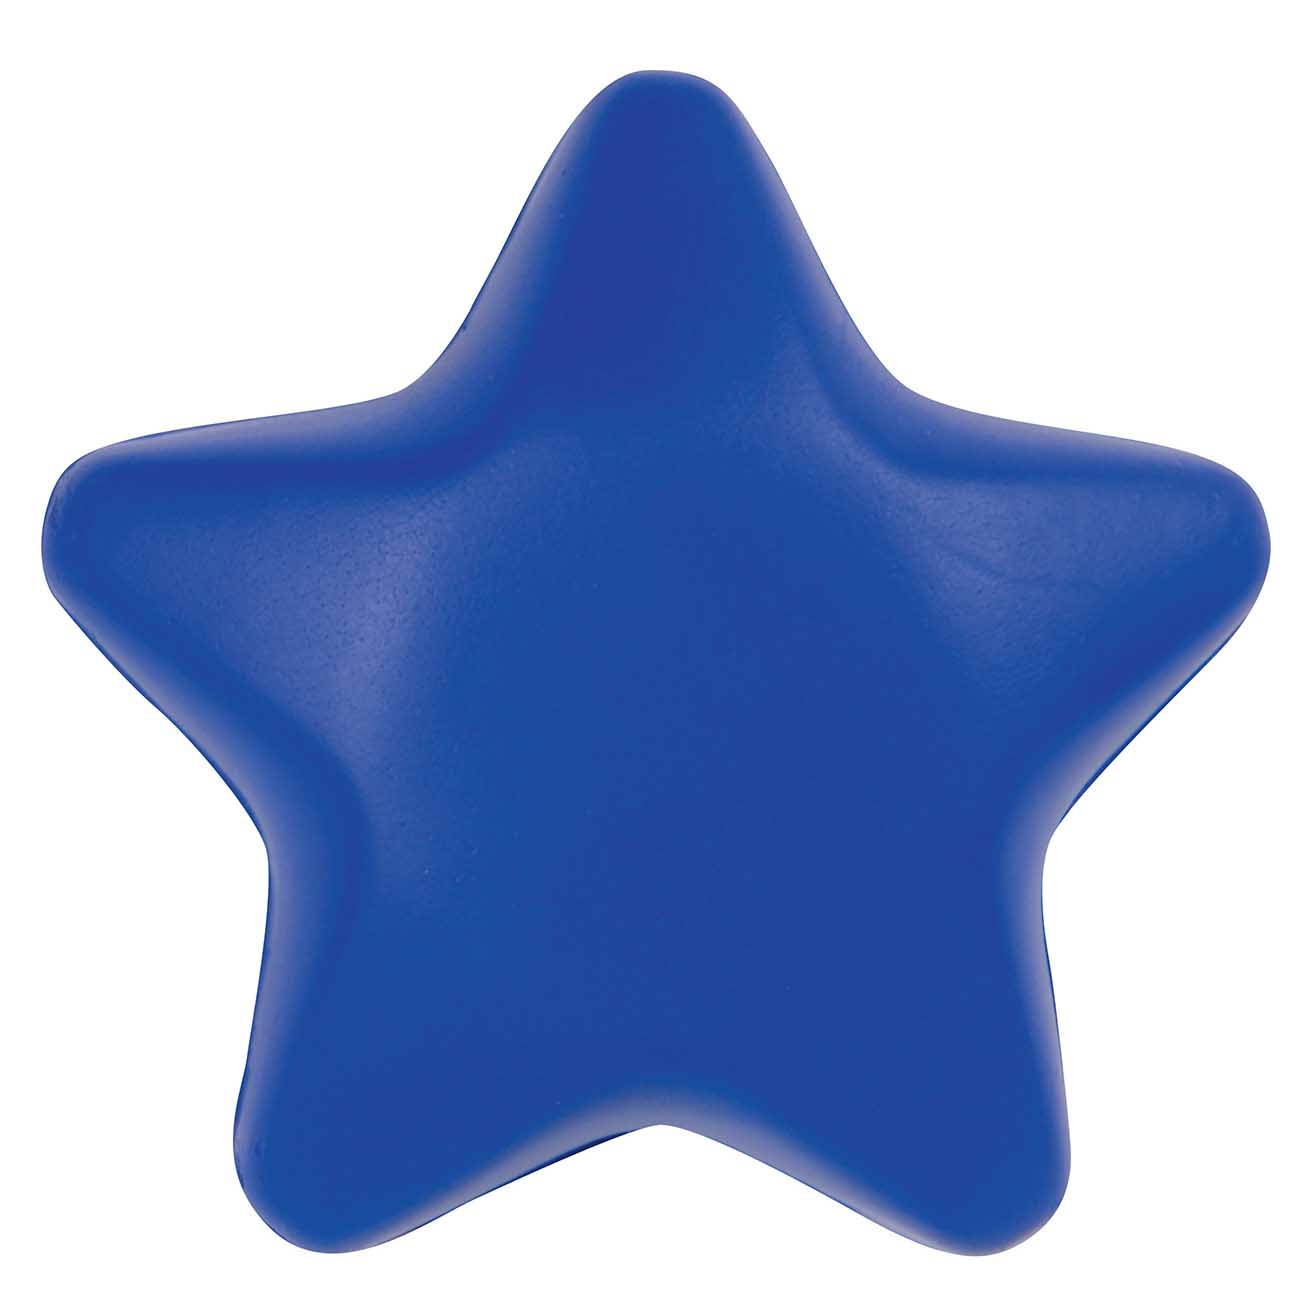 Anti-stress star STARLET ins-0402130